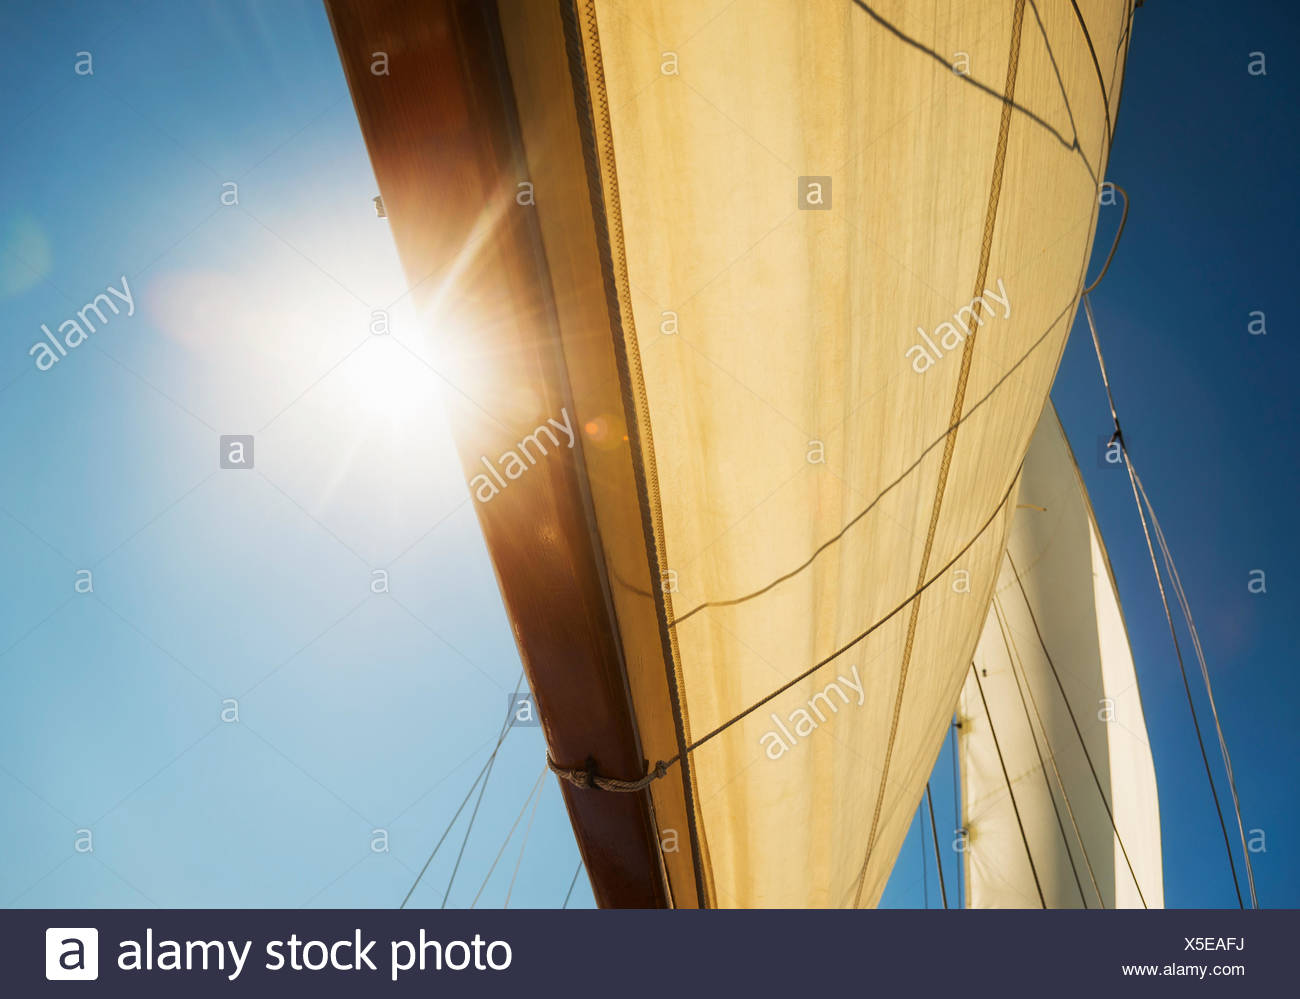 Close-up of sun shining through boat's sail - Stock Image